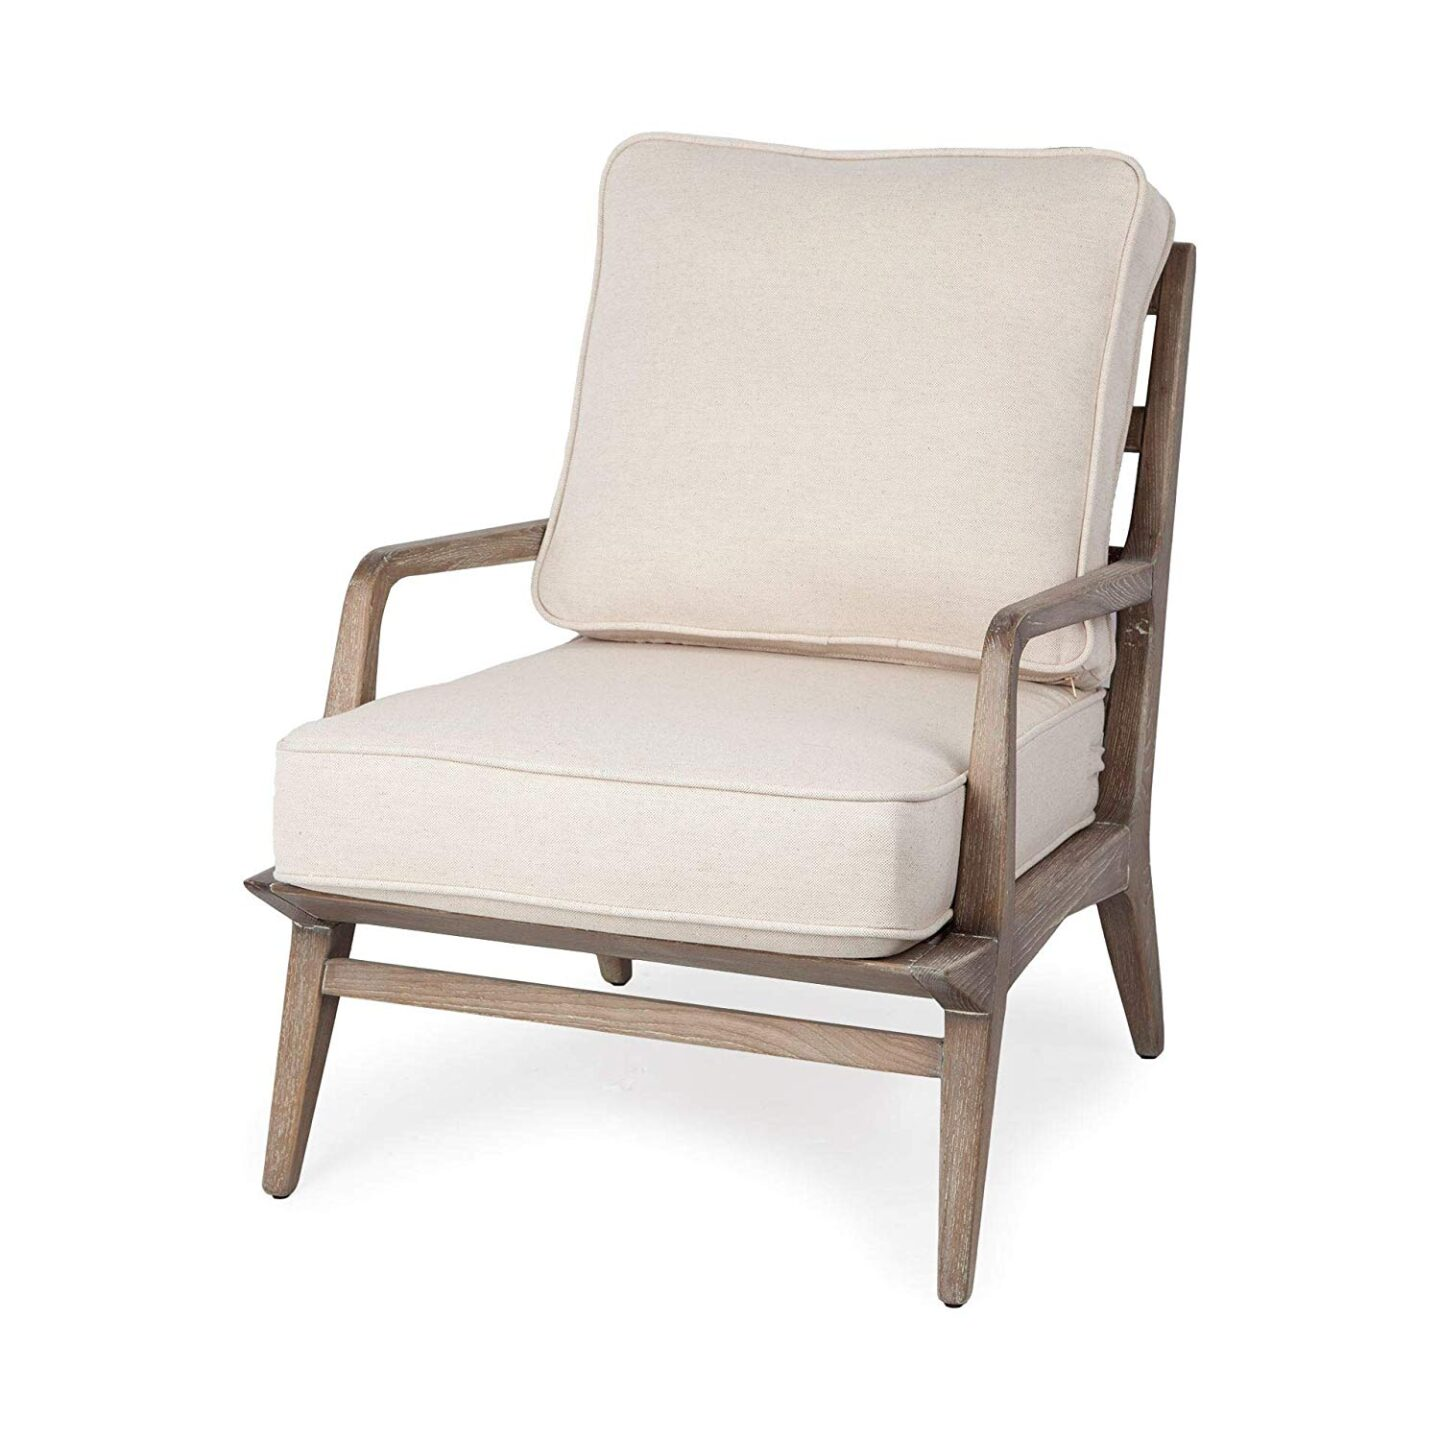 Mercana Harman Accent chair in cream